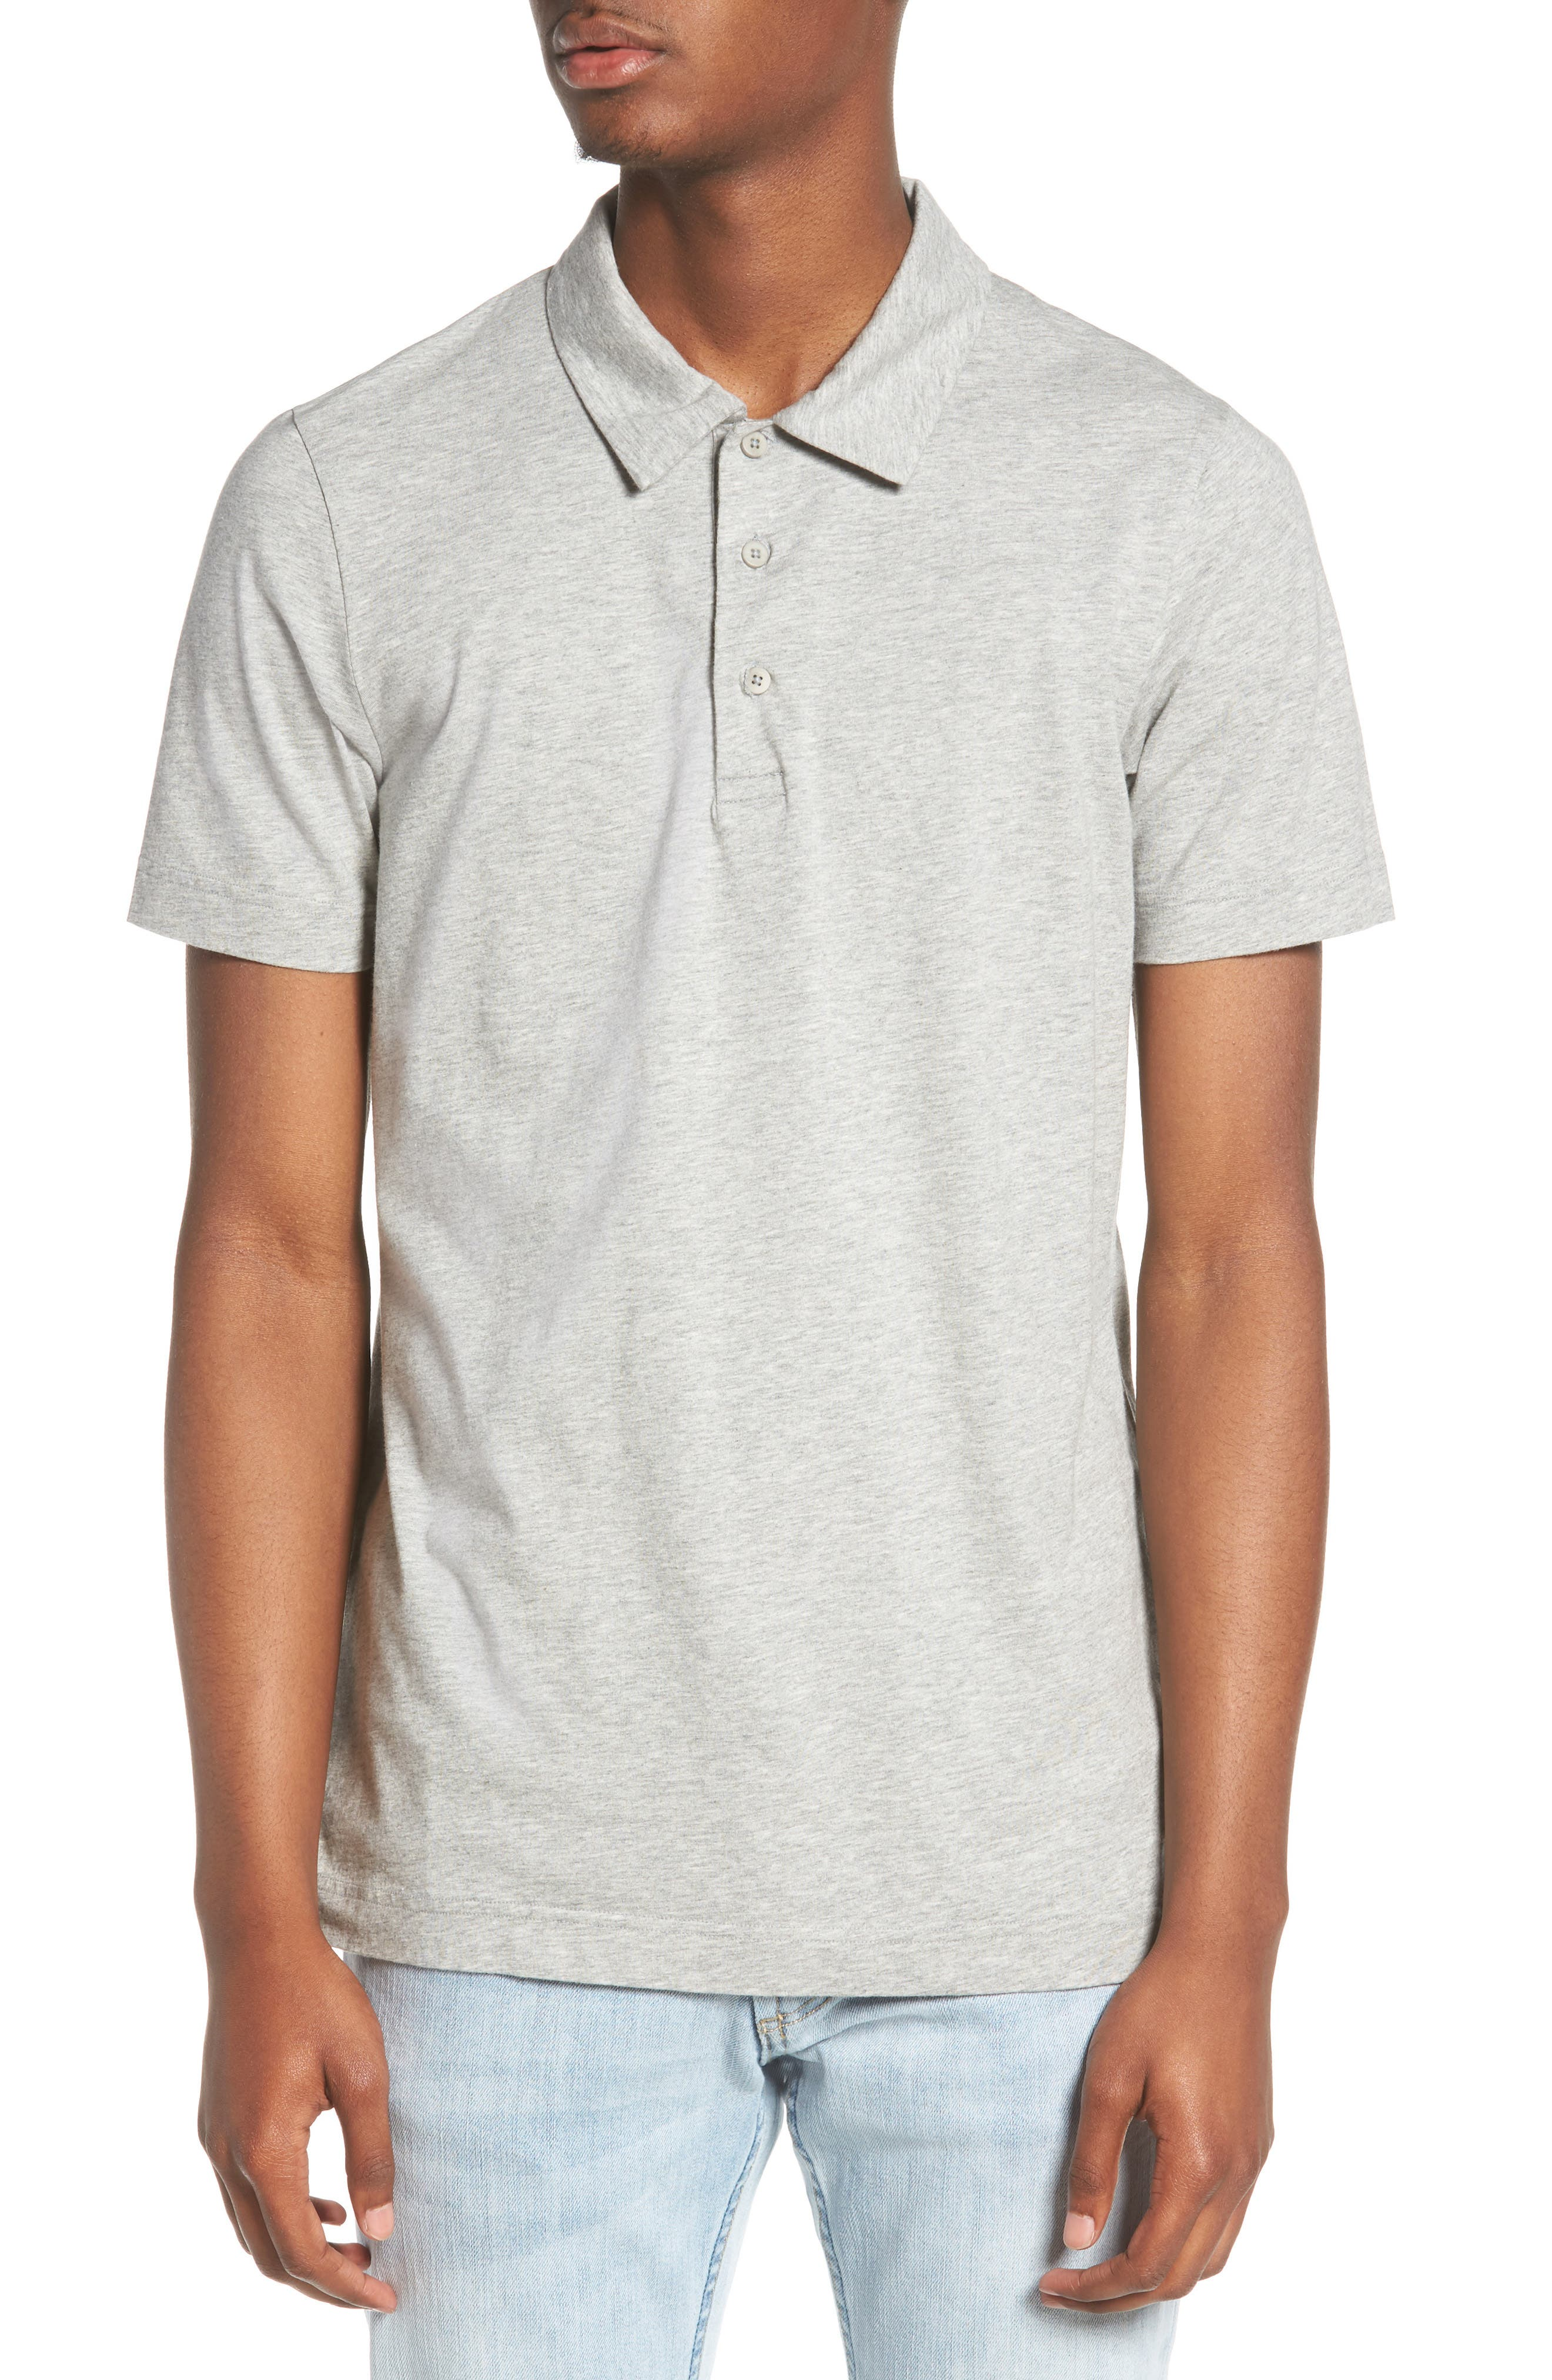 Alternate Image 1 Selected - wings + horns Short Sleeve Polo Shirt